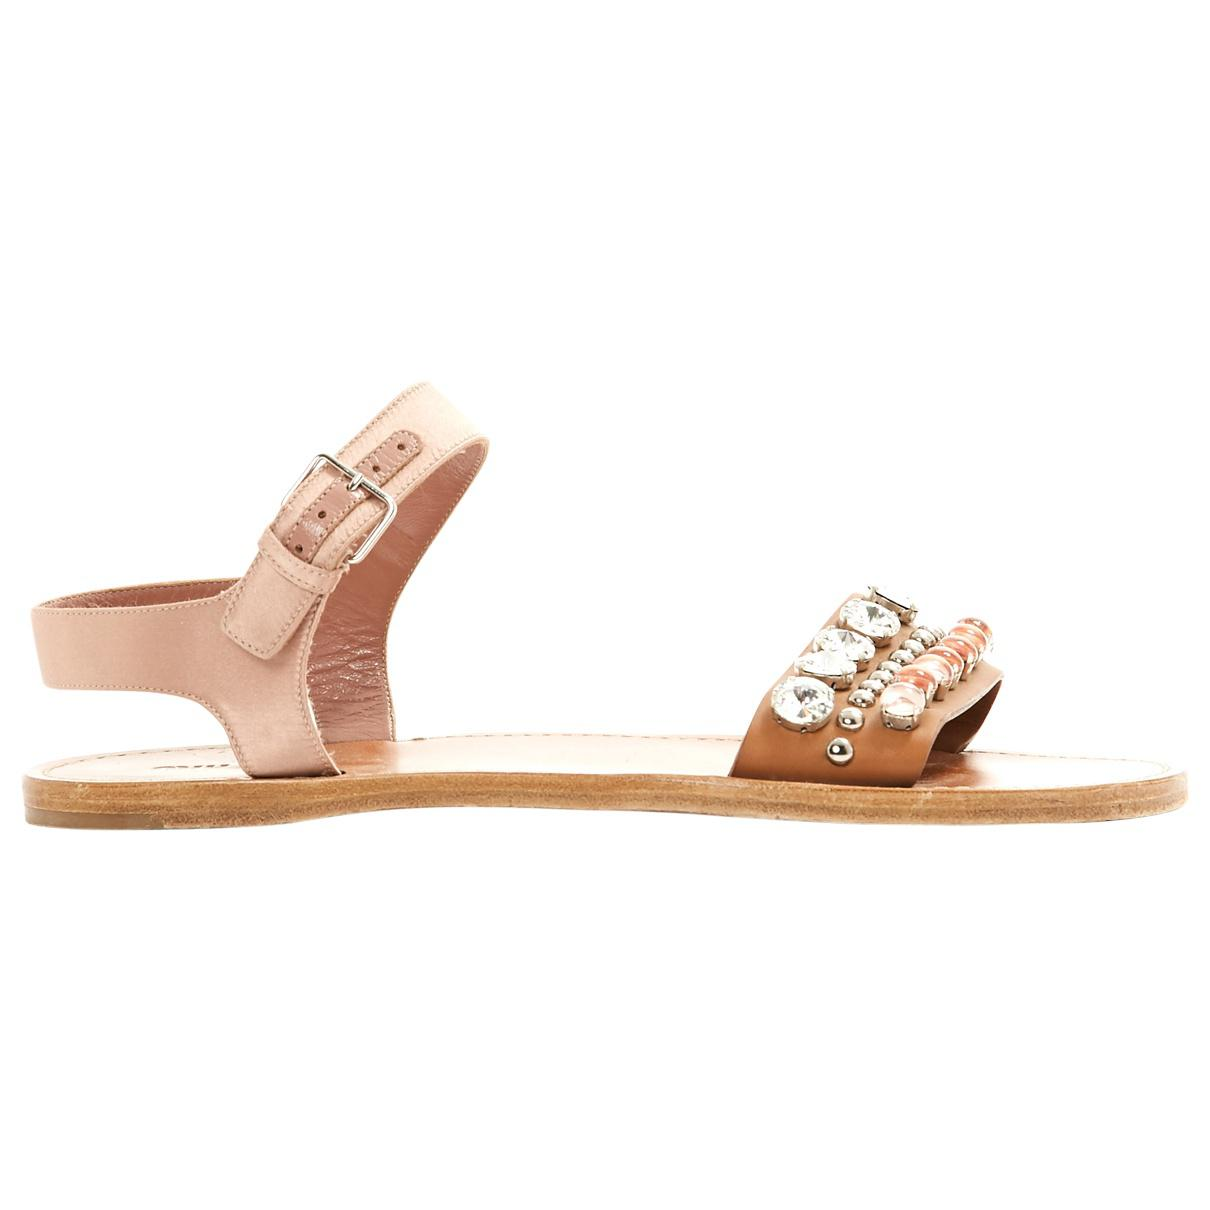 Pre-owned - Leather sandal Miu Miu SKTfEZvWF